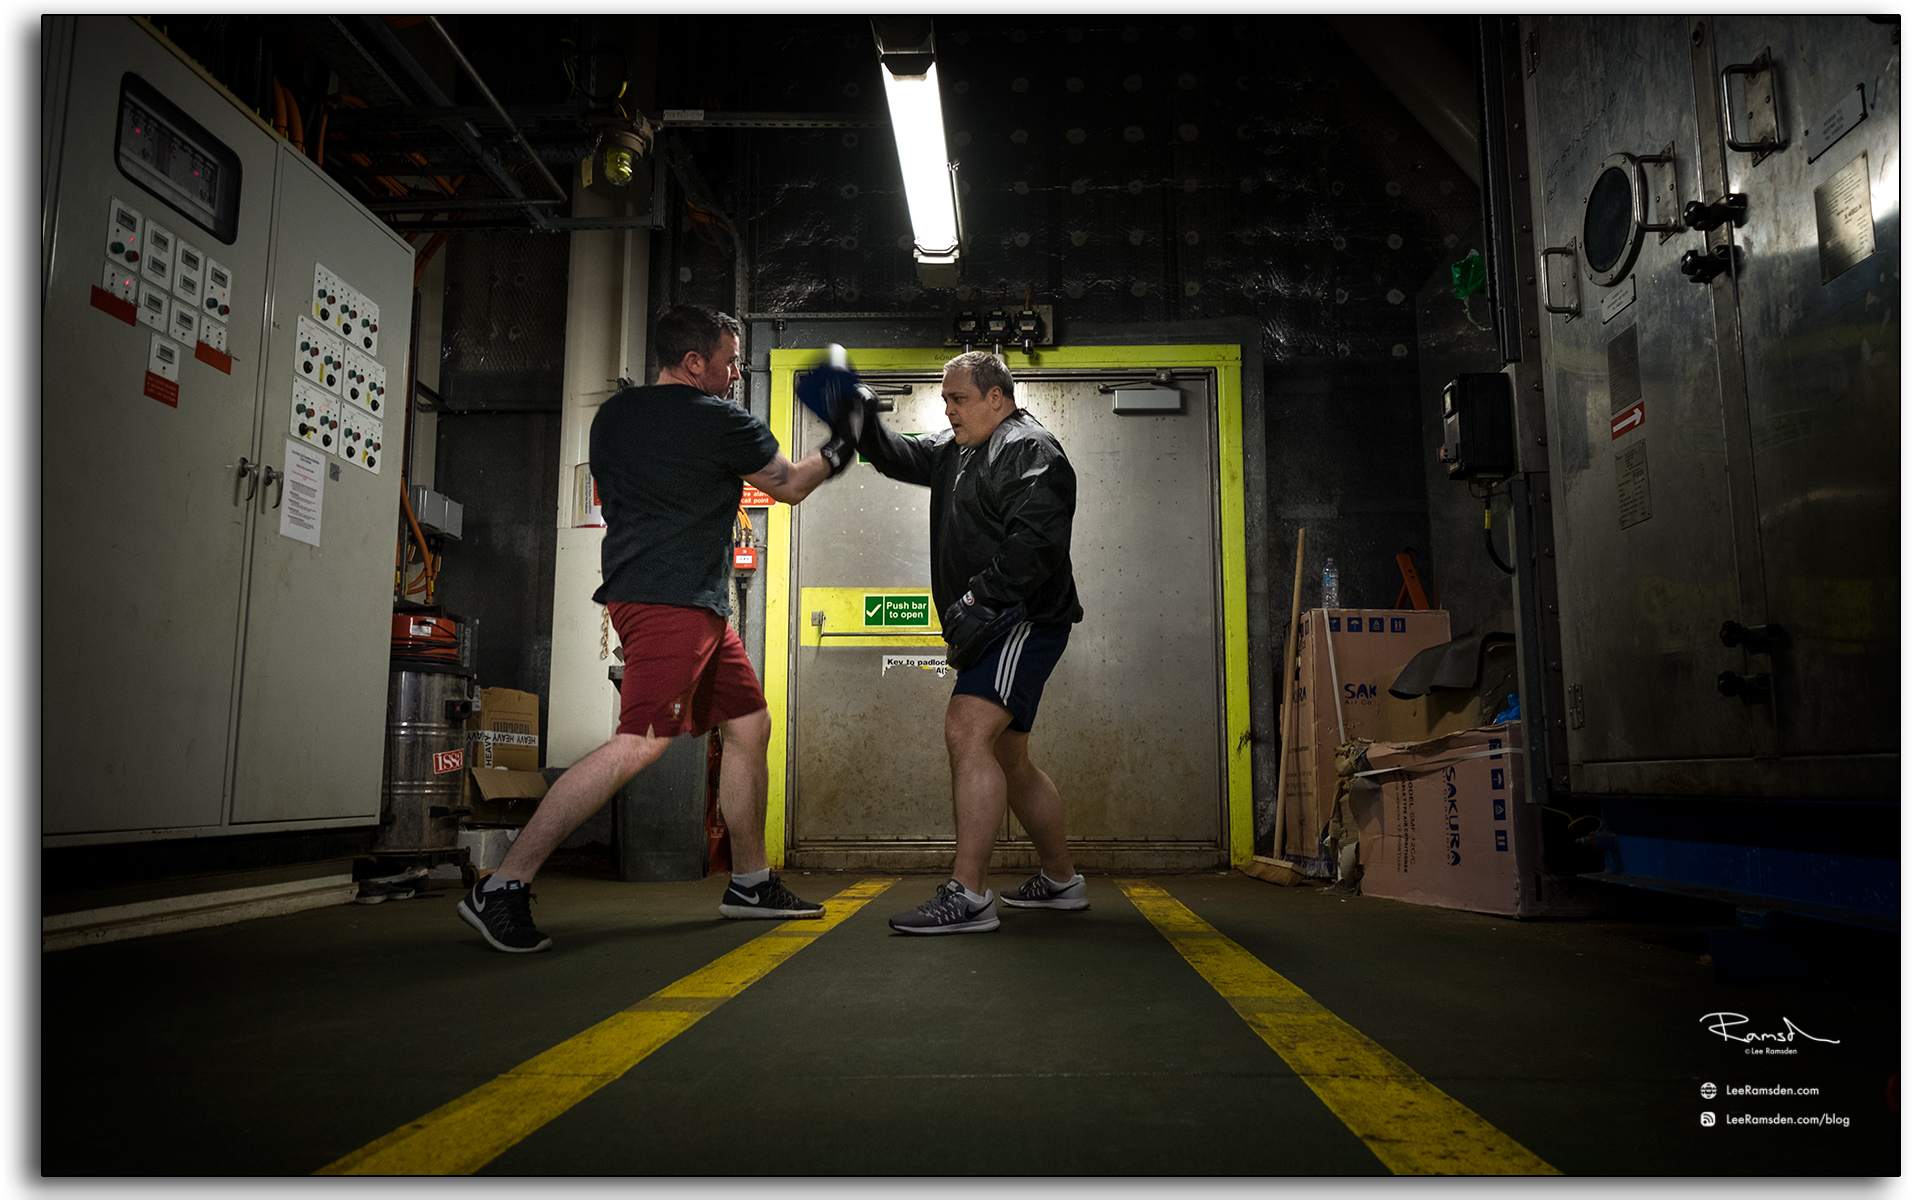 Boxing, Wayne Muirhead, Simon Scott, BP, Petrofac, offshore, fittness, sports, photo taken by, Lee Ramsden.